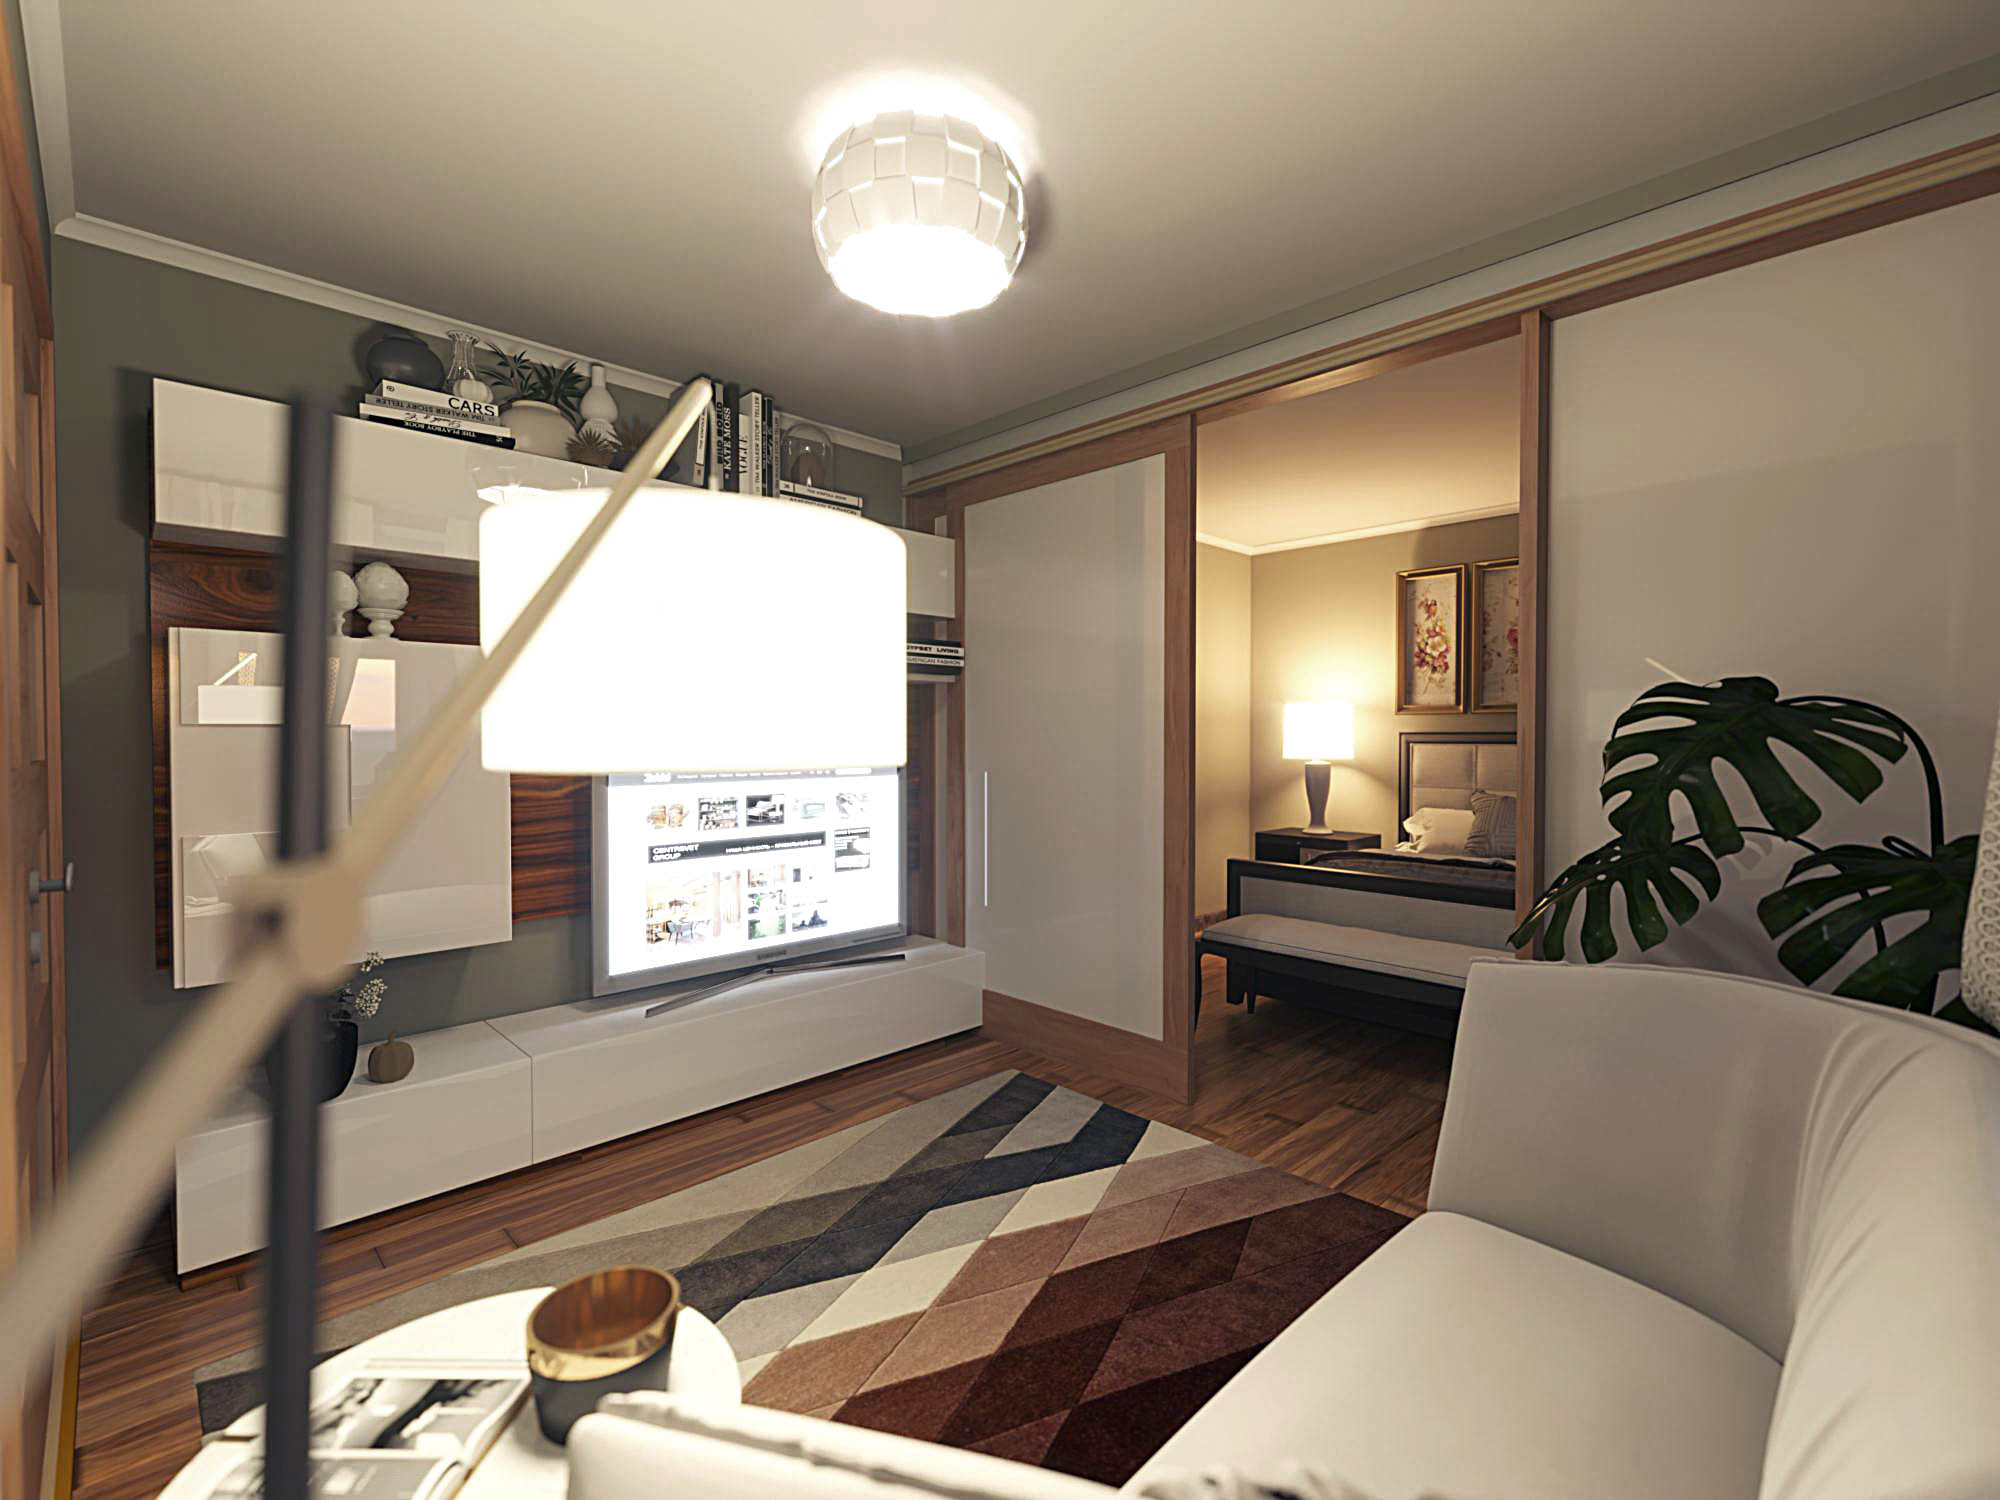 Separation of the hall in the apartment. in ArchiCAD corona render image